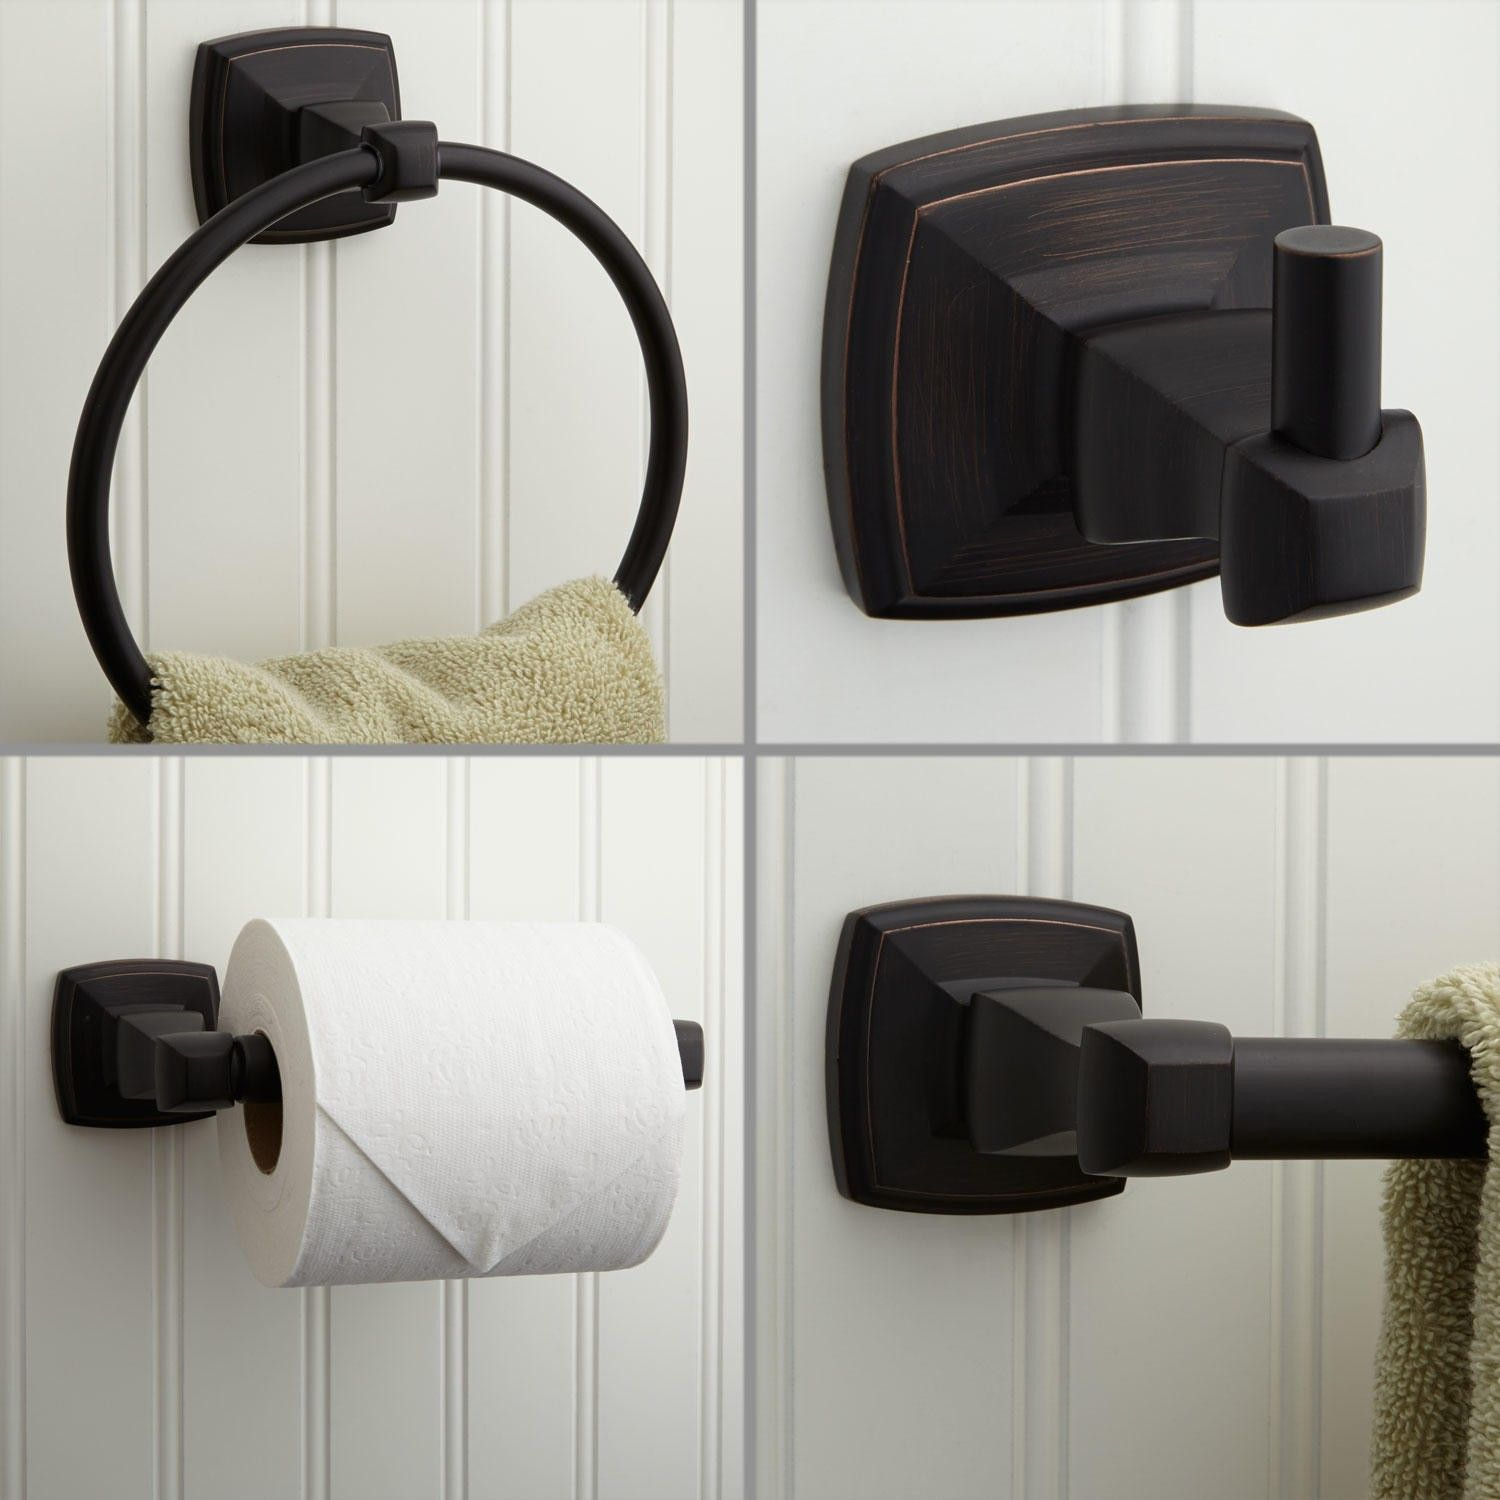 oil rubbed bronze bathroom accessories. Bathroom Accessory Sets Oil Rubbed Bronze - Are You Trying To Find Simple Toilet Ideas That Could Create A Huge Difference As Accessories R